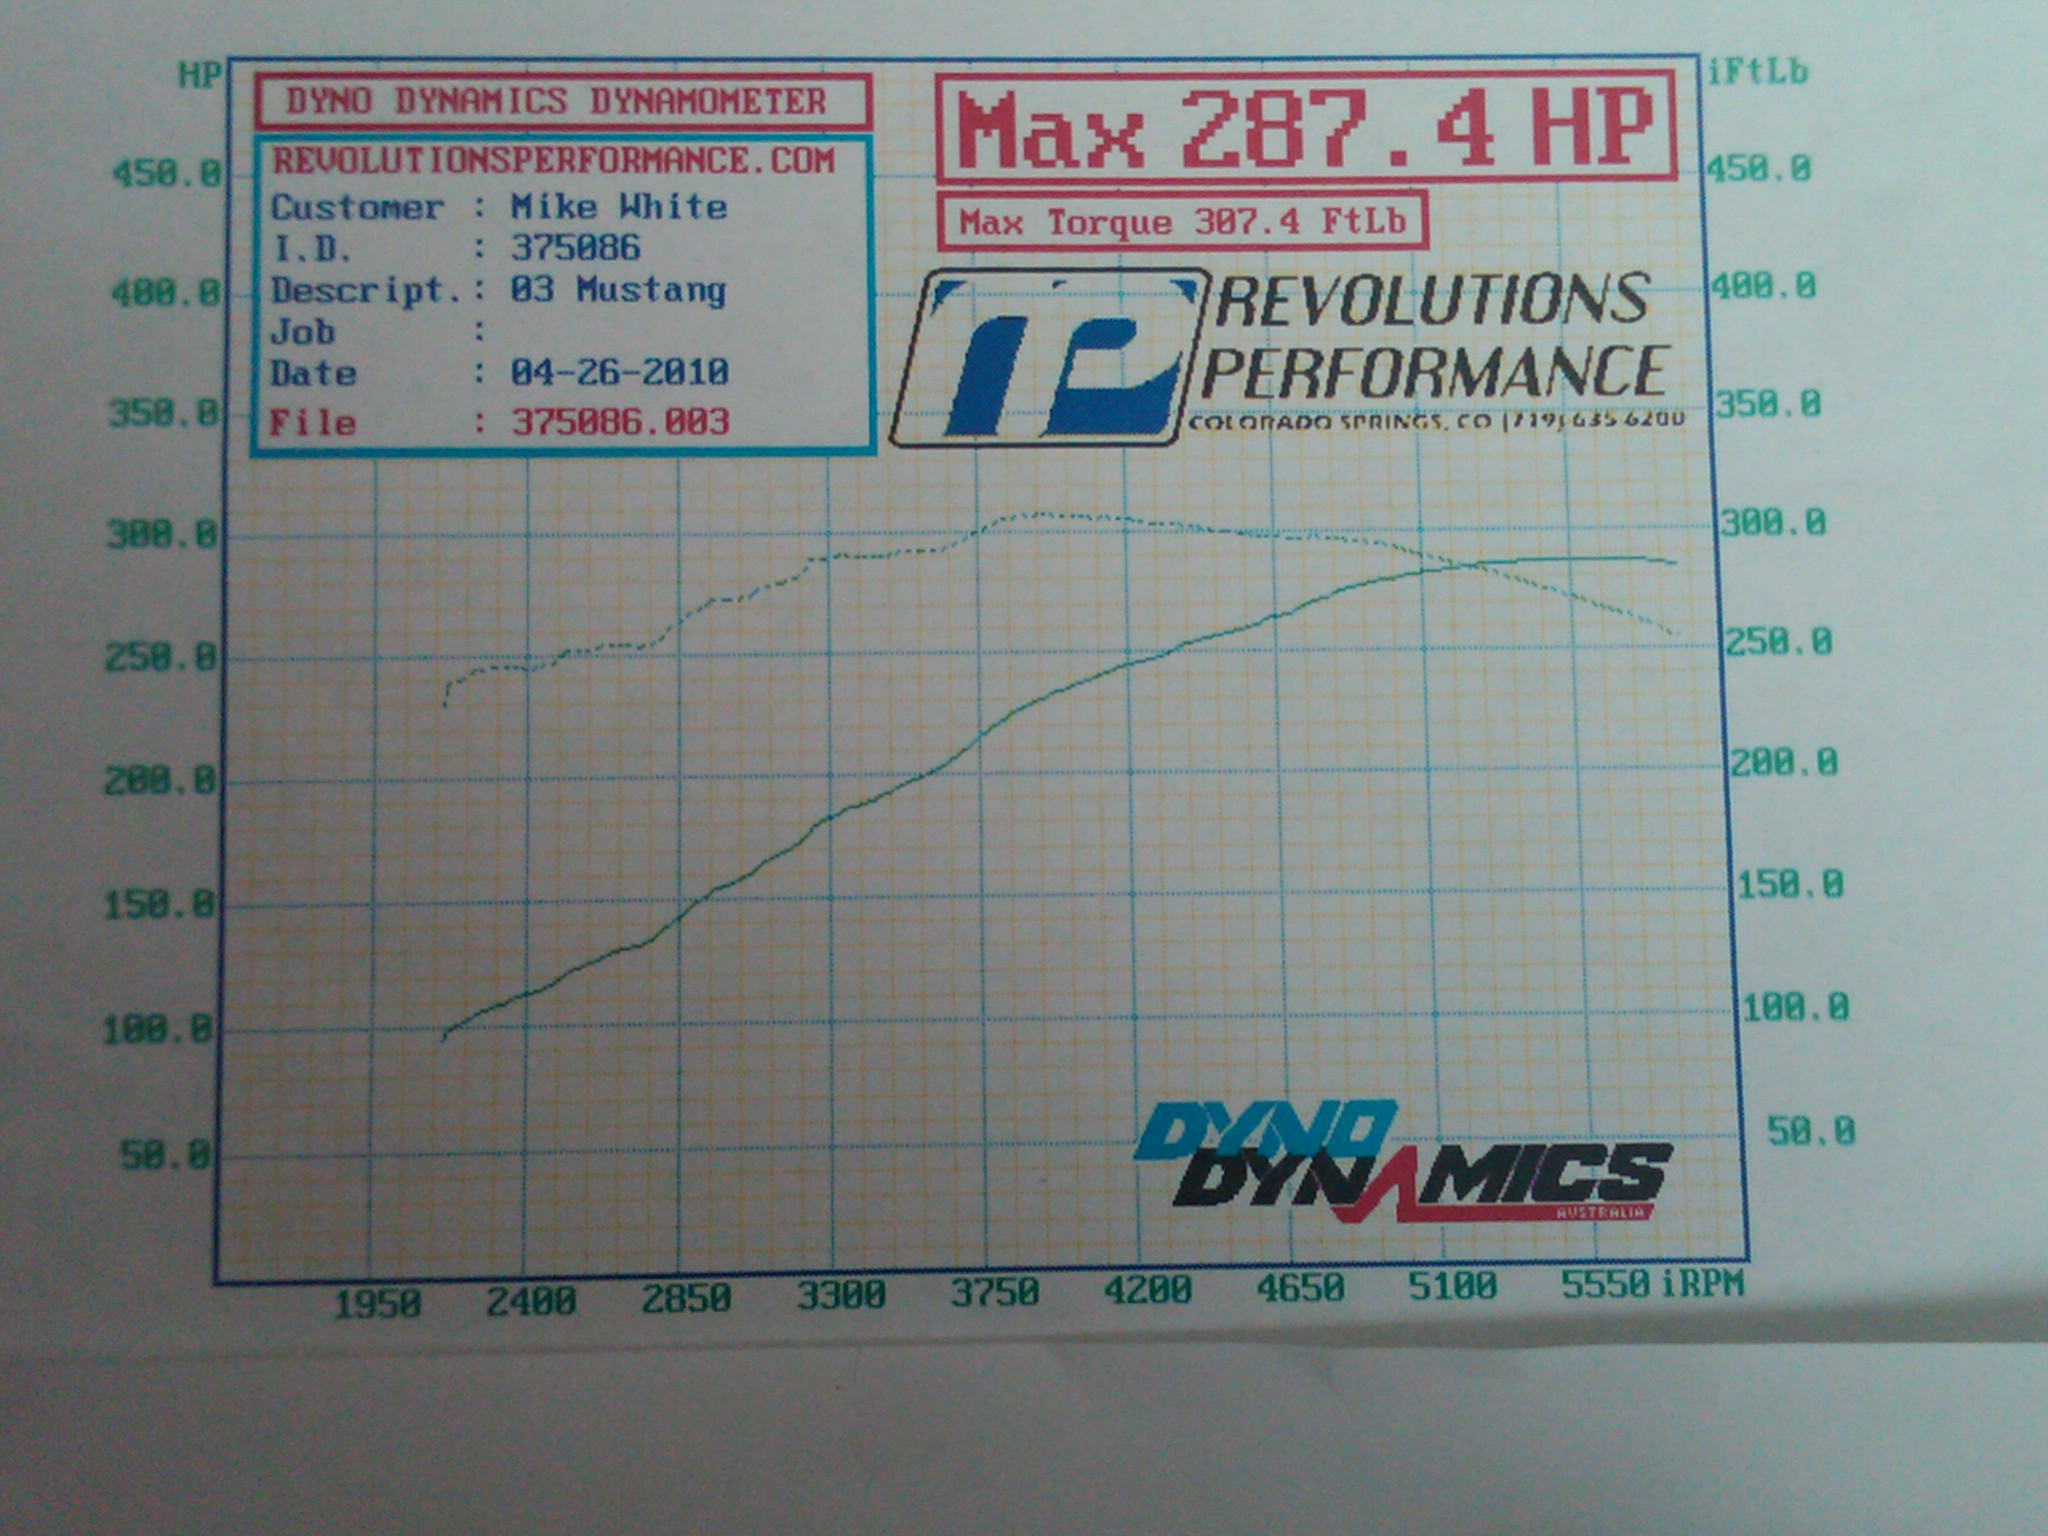 2003 Ford Mustang GT Dyno Results Graph